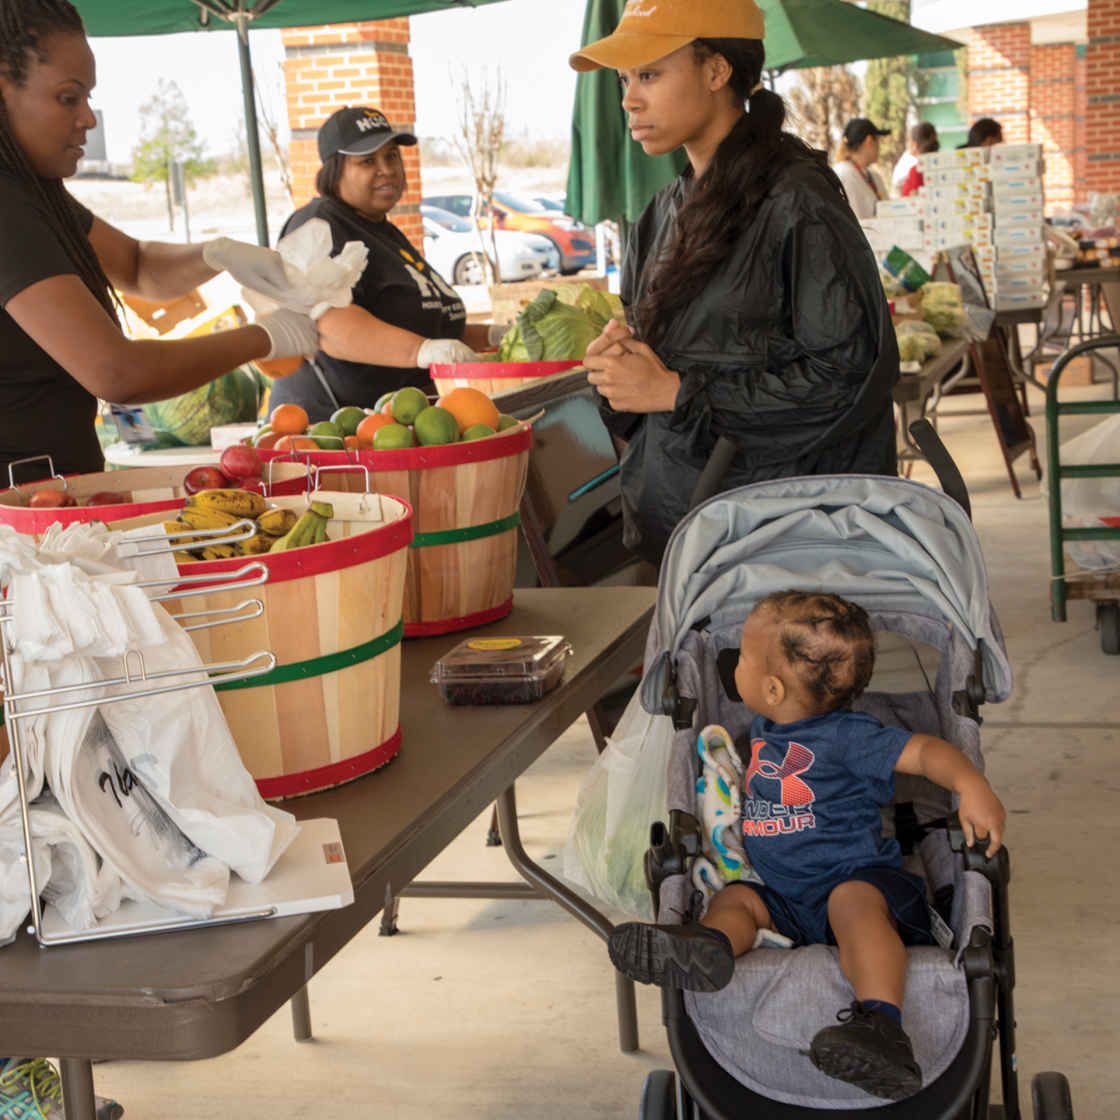 The Family Independence Initiative in Oakland, California, aims to change the way investment is made in low-income communities and families.